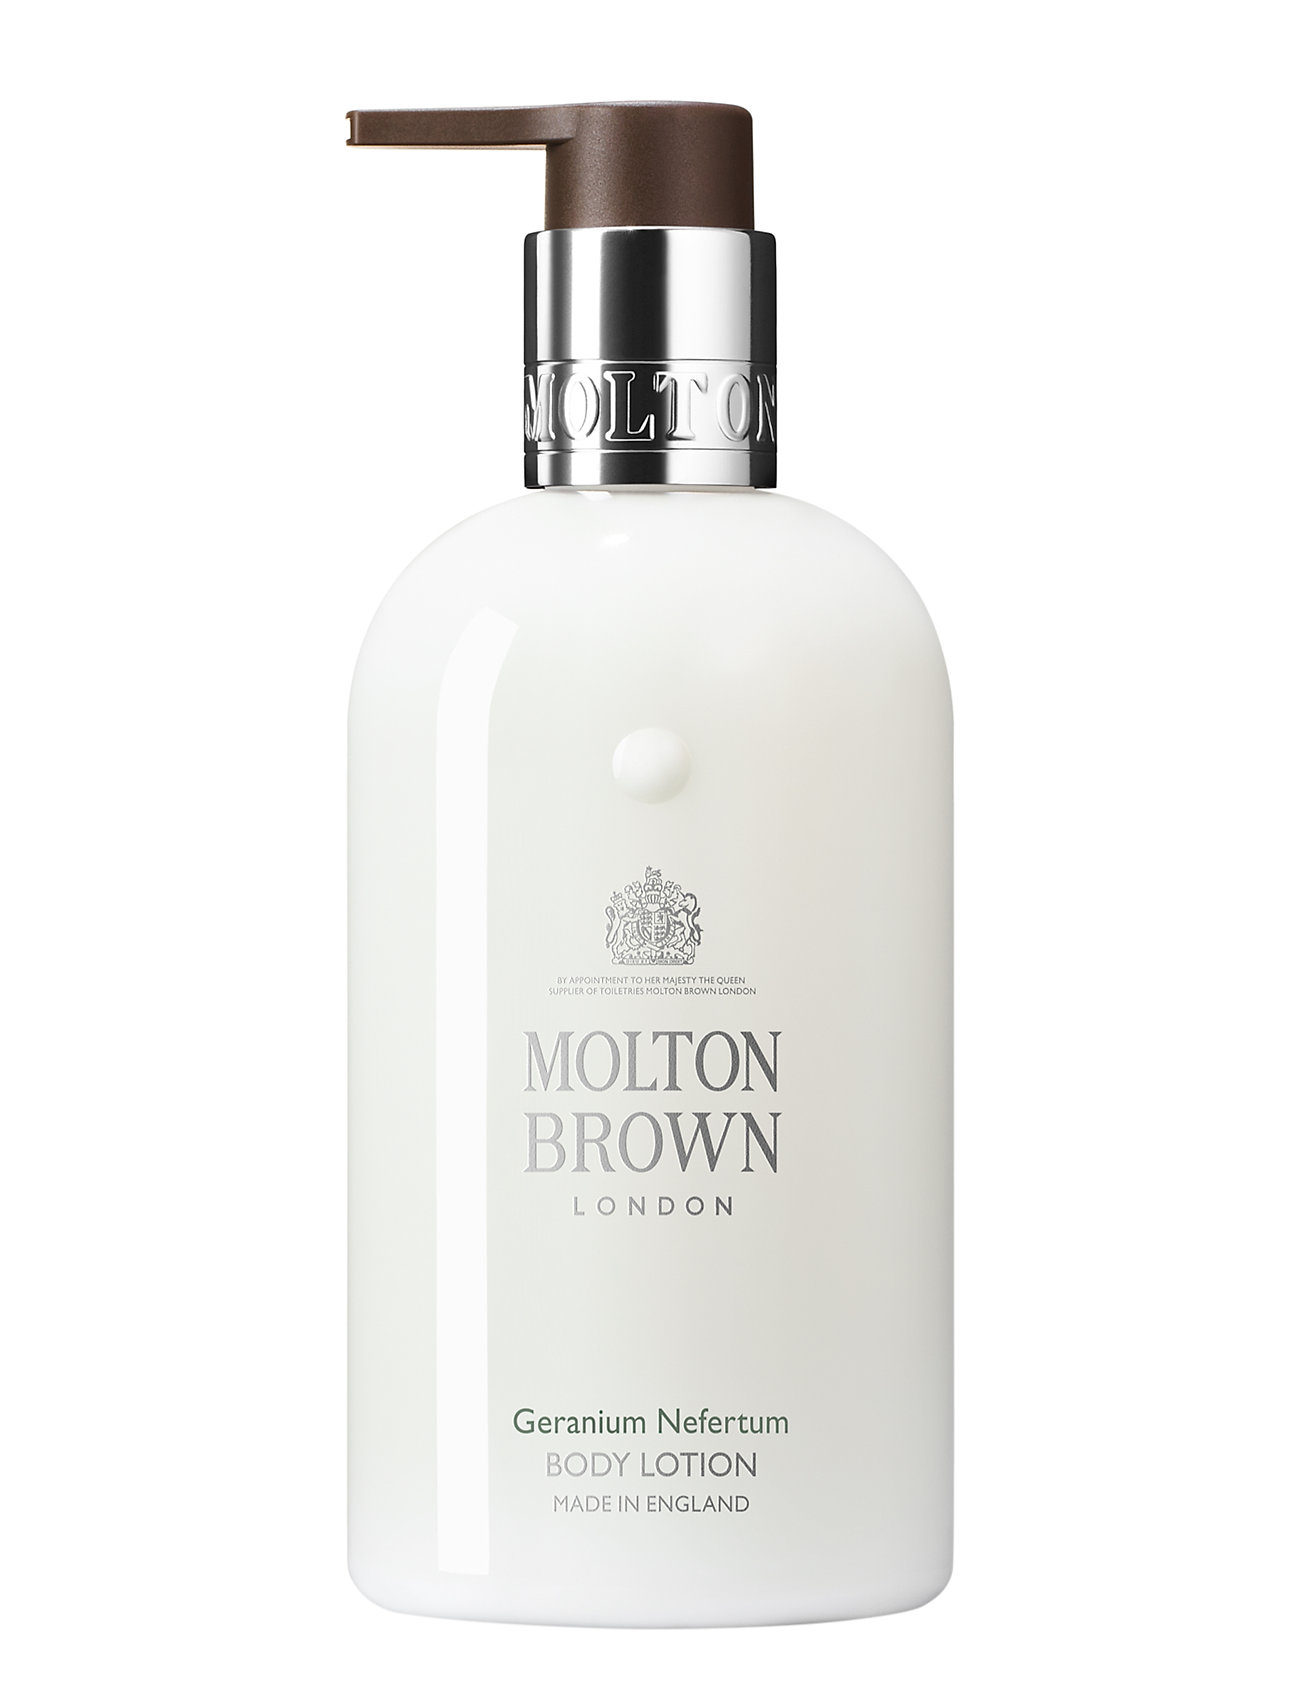 Image of Geranium Nefertum Body Lotion Beauty WOMEN Skin Care Body Body Lotion Nude Molton Brown (3272914509)